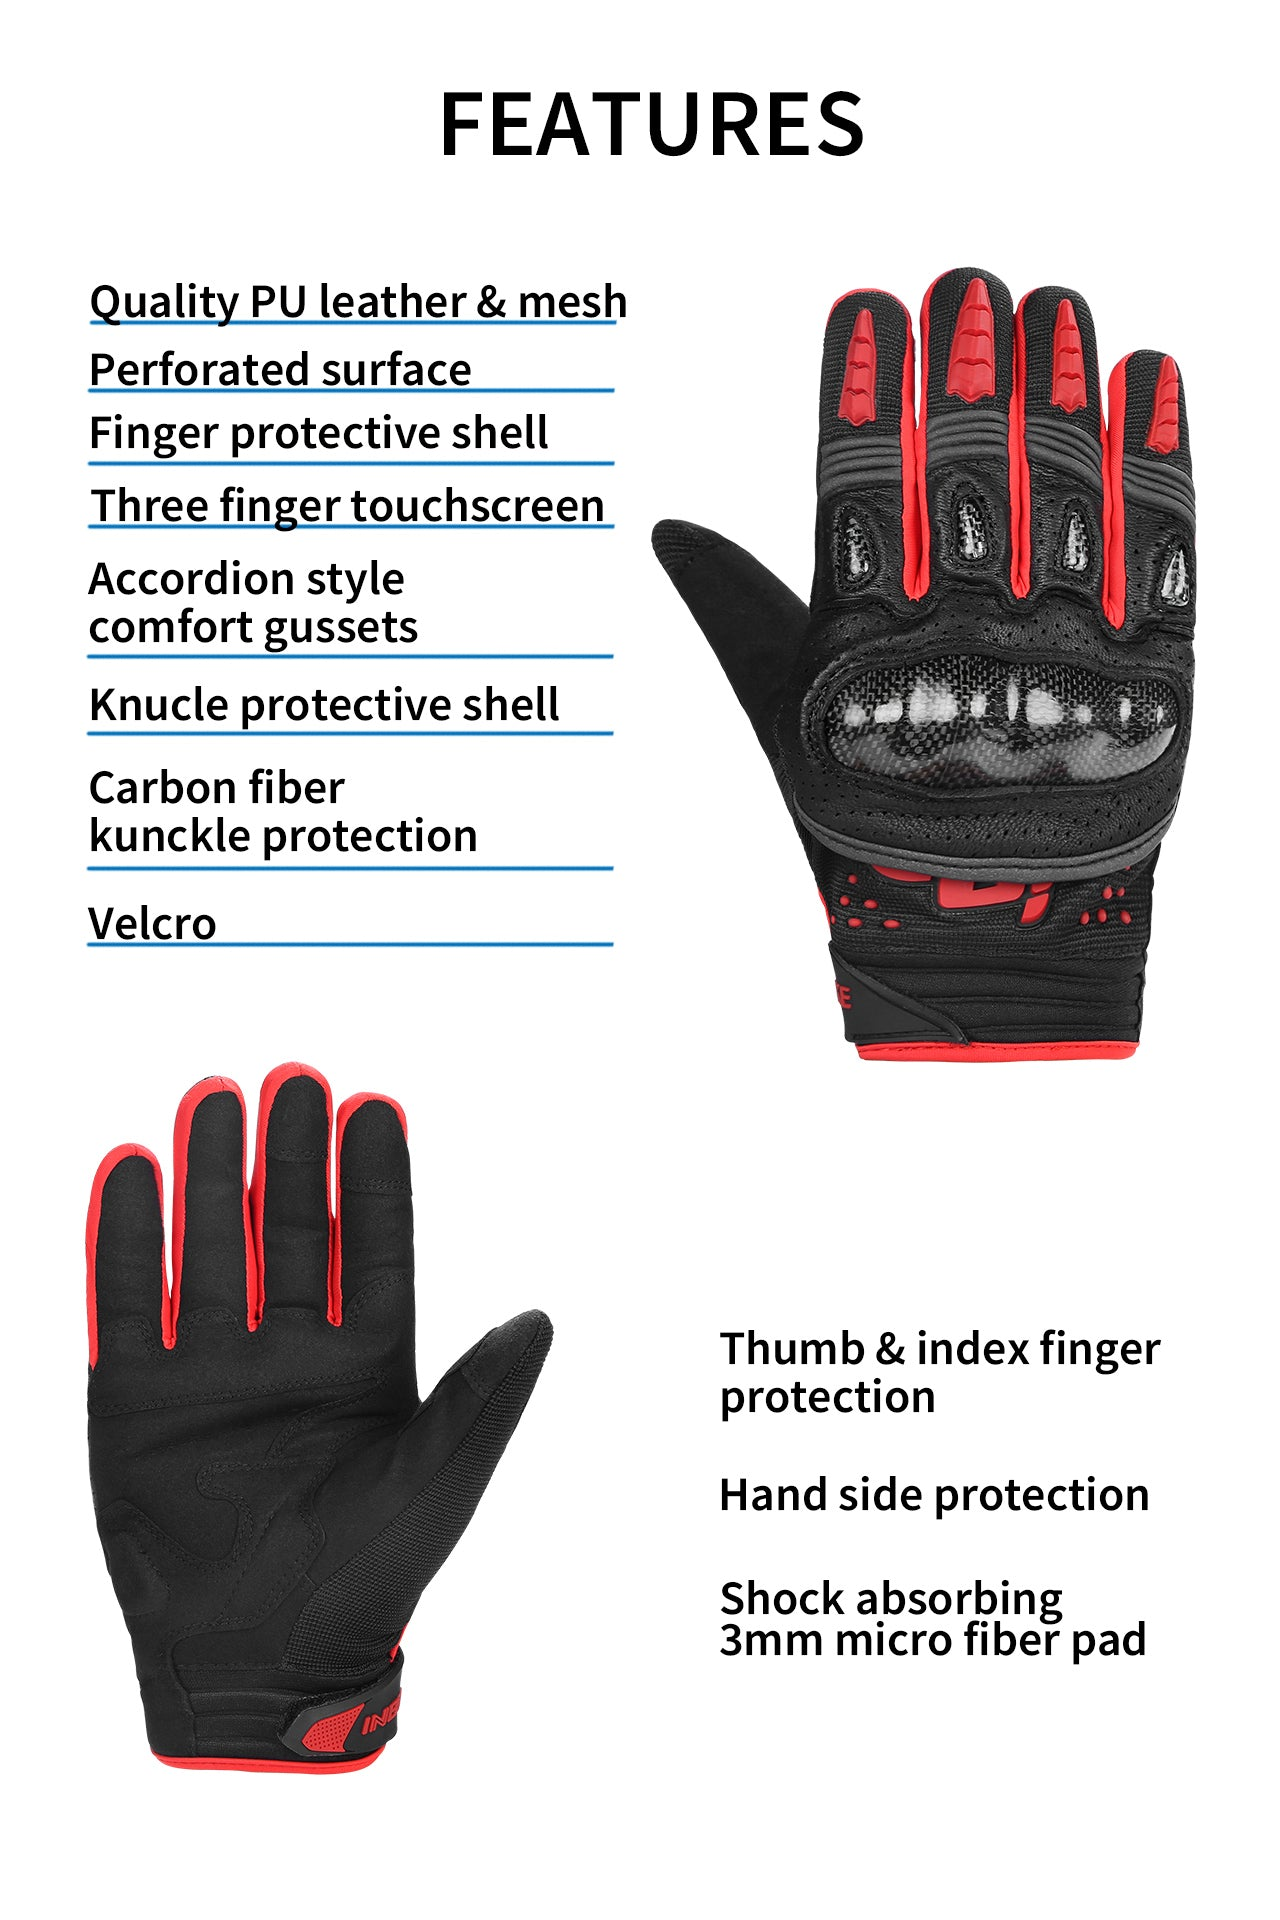 features of INBIKE urban motorcycle gloves